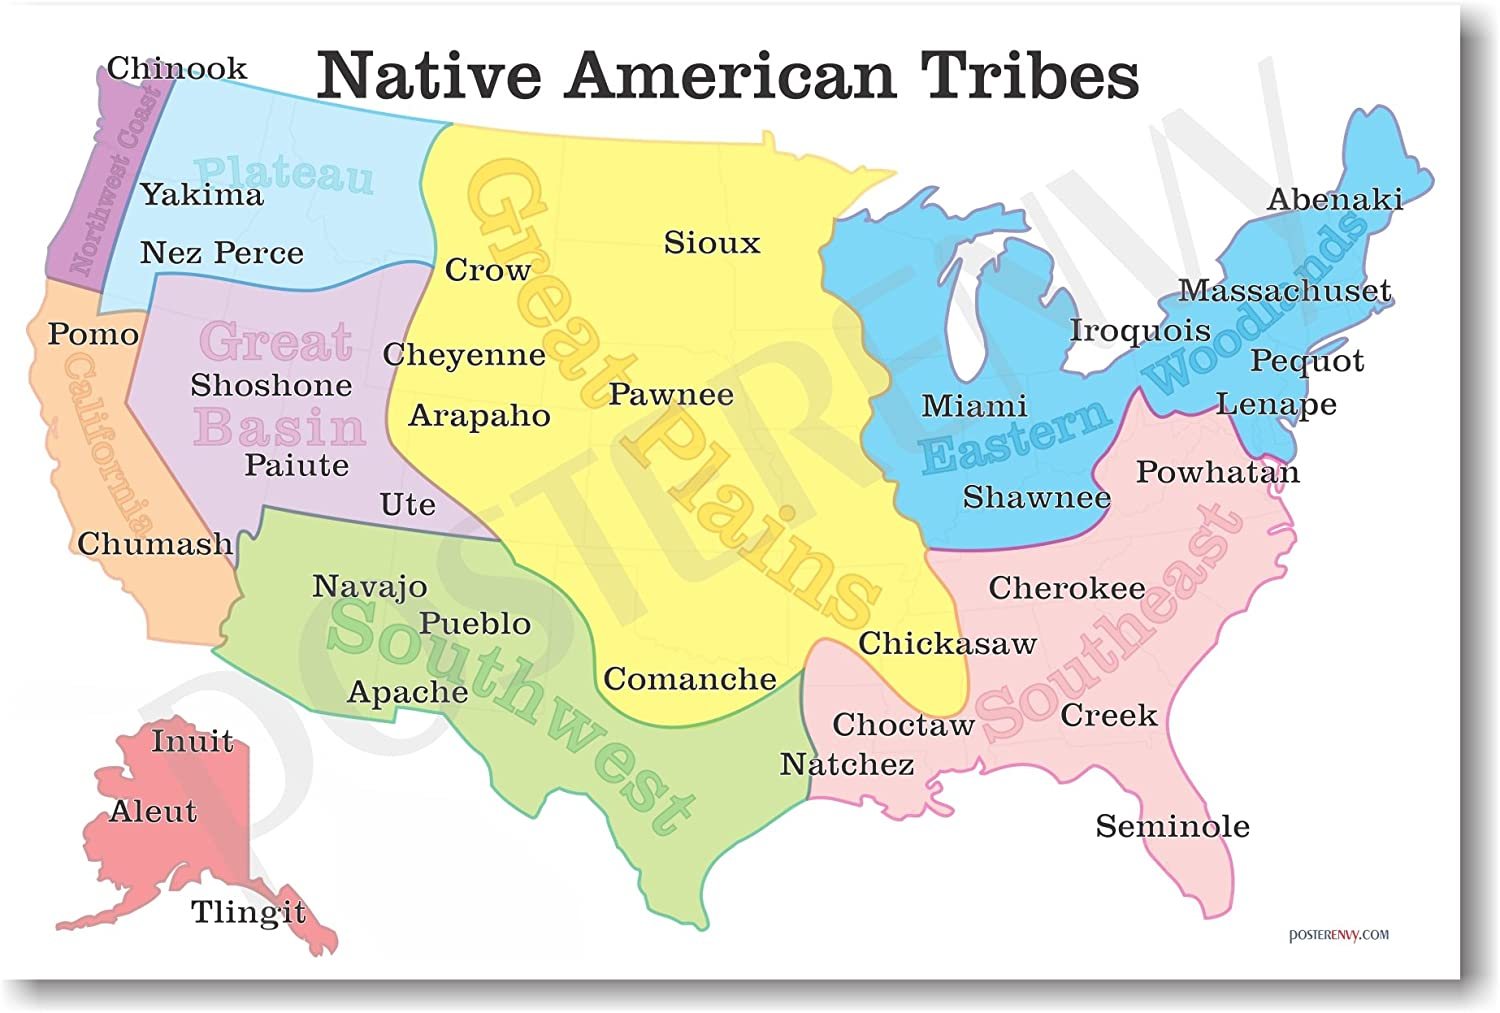 Native American Map Of The Us Amazon.com: Native American Tribes Map   US History Classroom